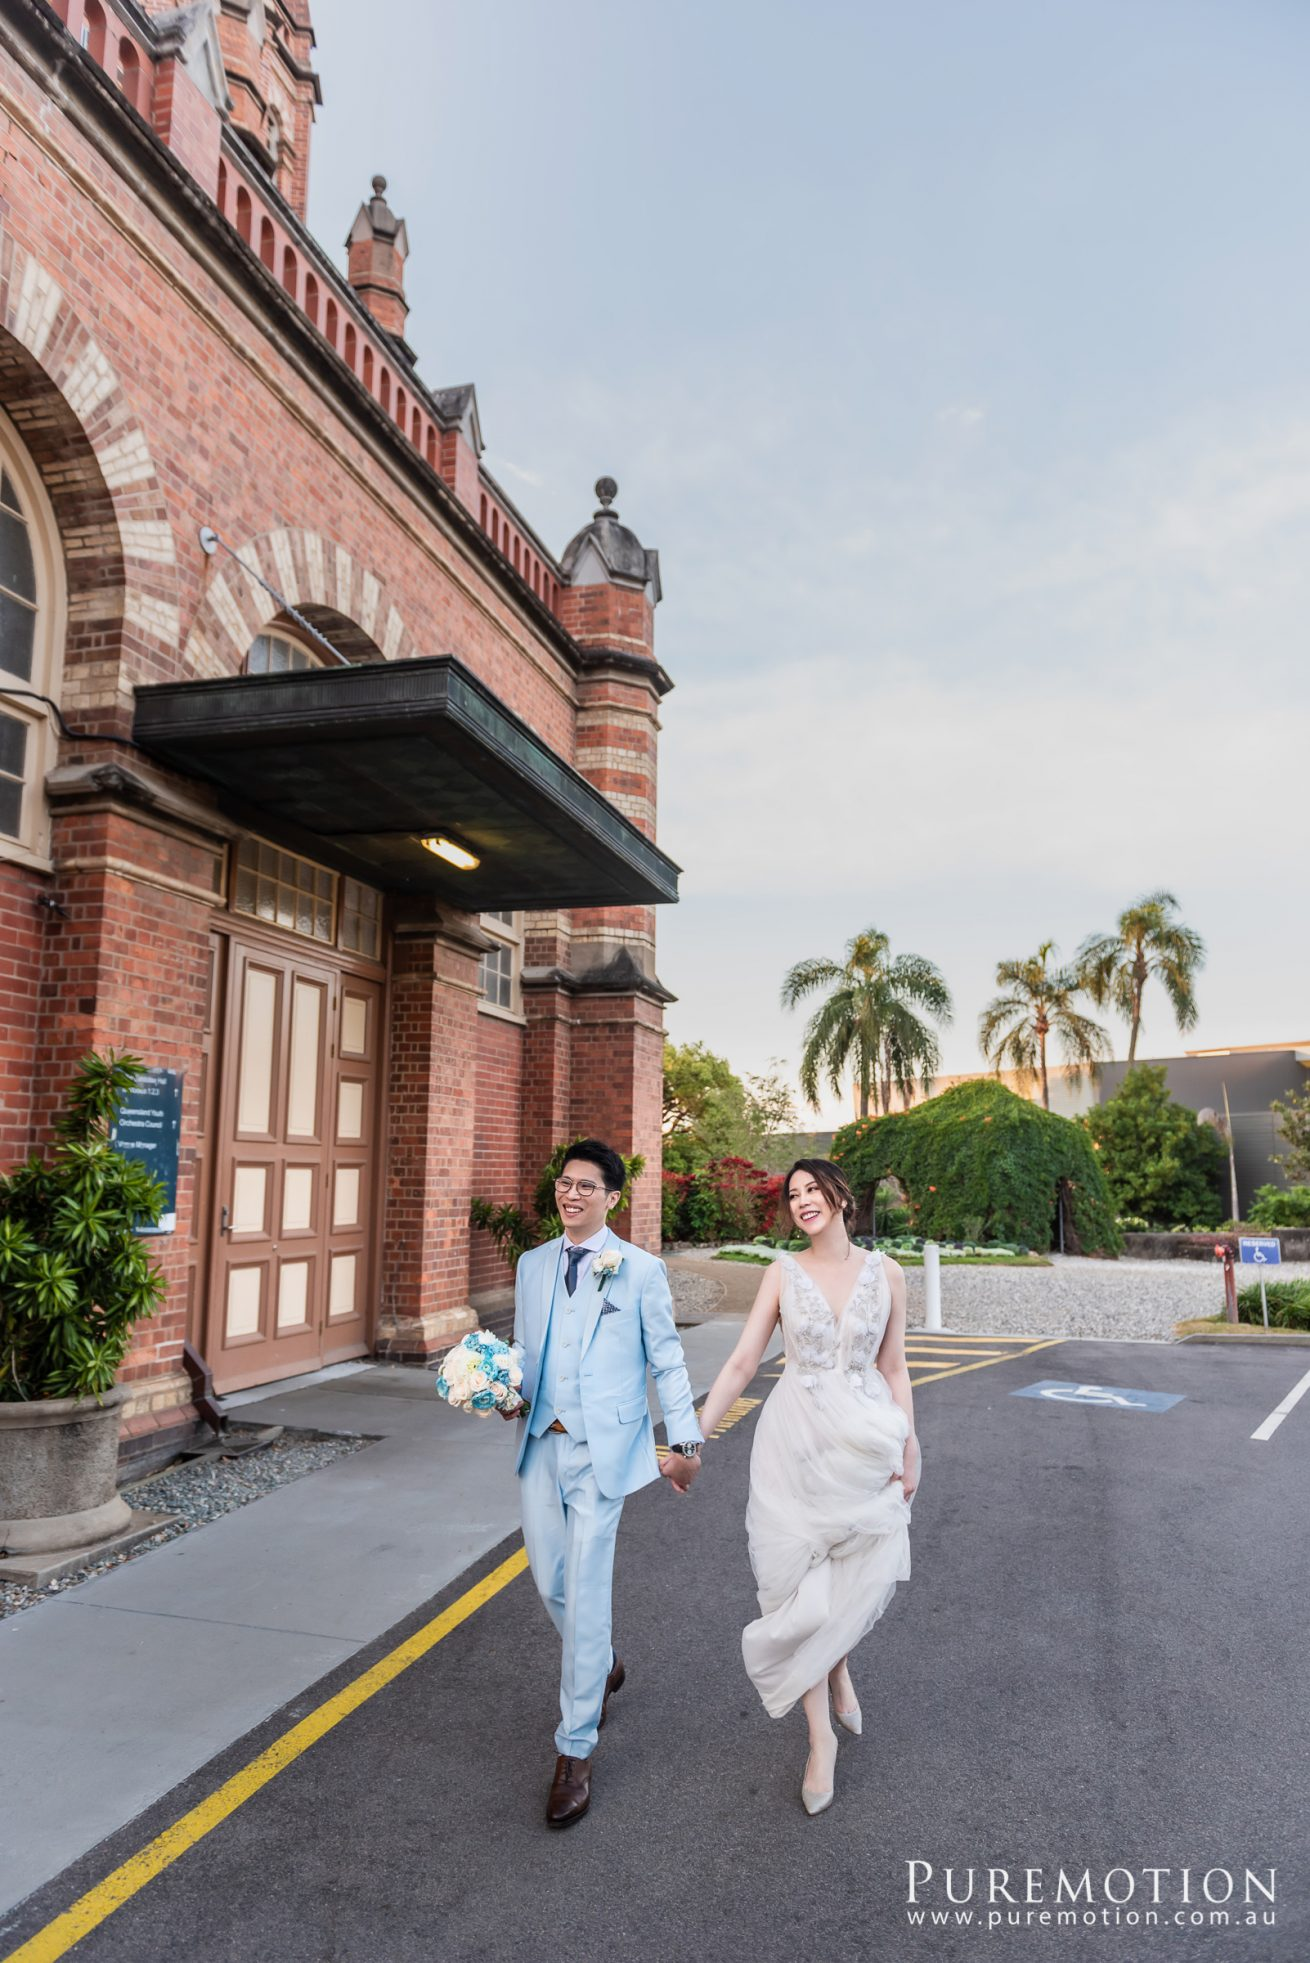 190928 Puremotion Wedding Photography Brisbane Alex Huang AnaDon-0080